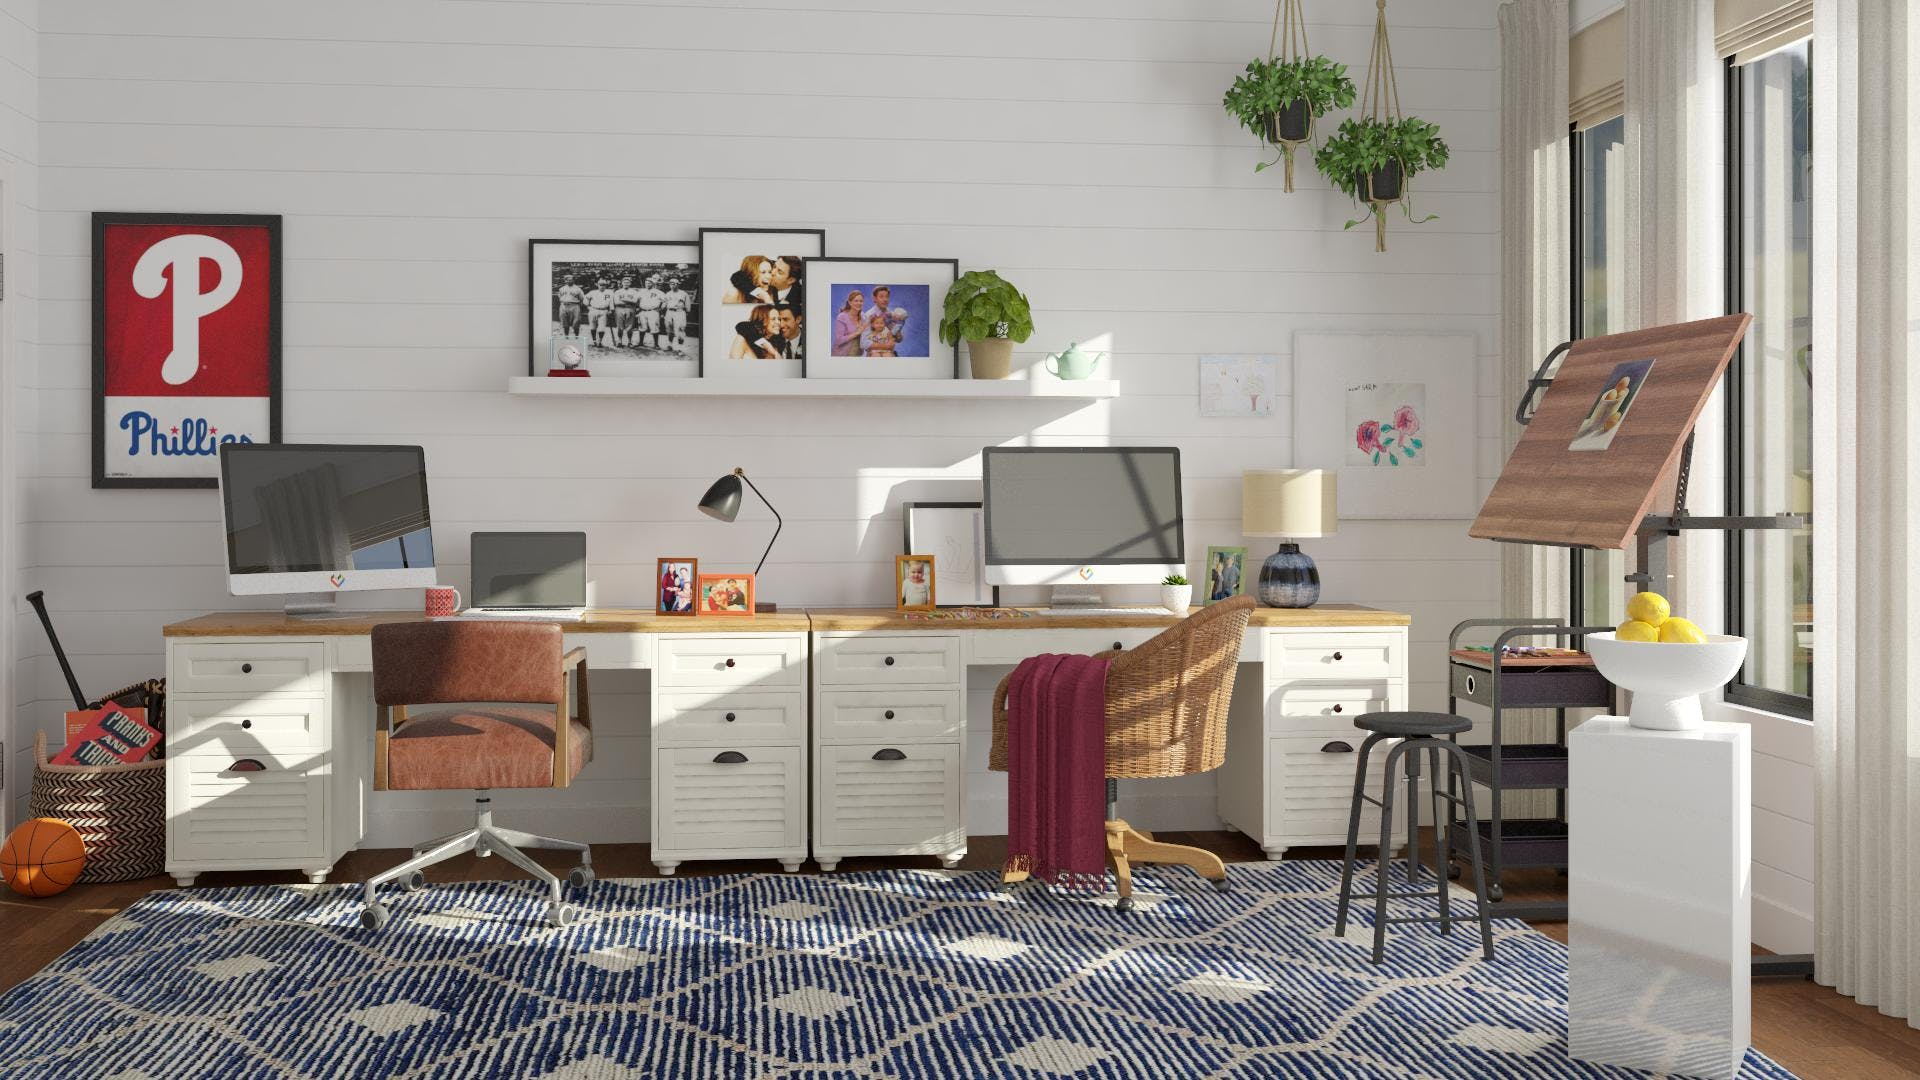 The Office: Pam & Jim's Home Office